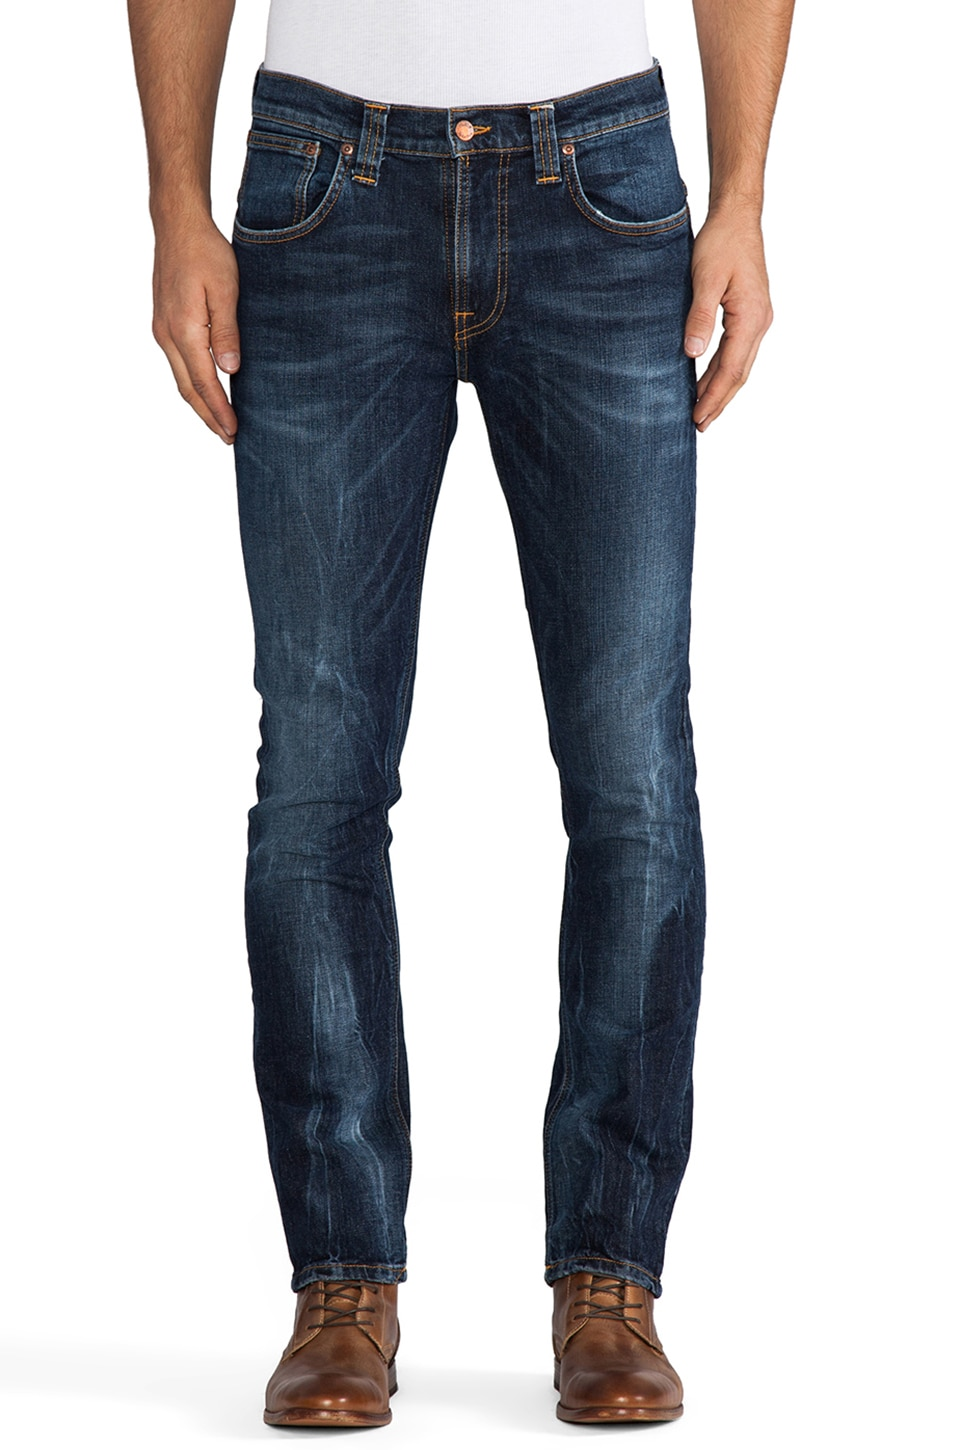 Nudie Jeans Tape Ted in Org. Clean Darkblue